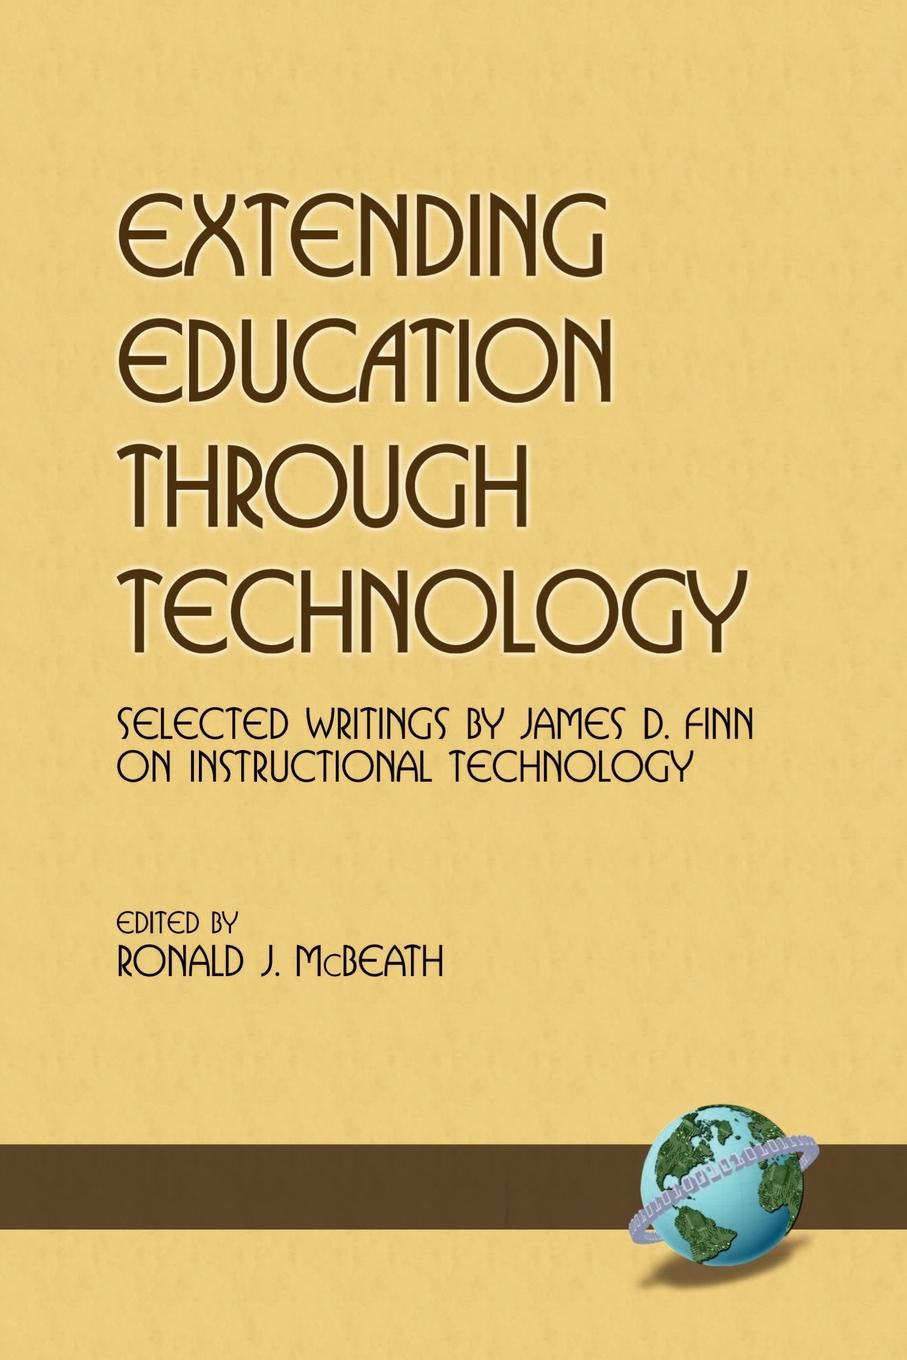 James D. Finn Extending Education Through Technology. Selected Writings by James D. Finn on Instructional Technology (PB)